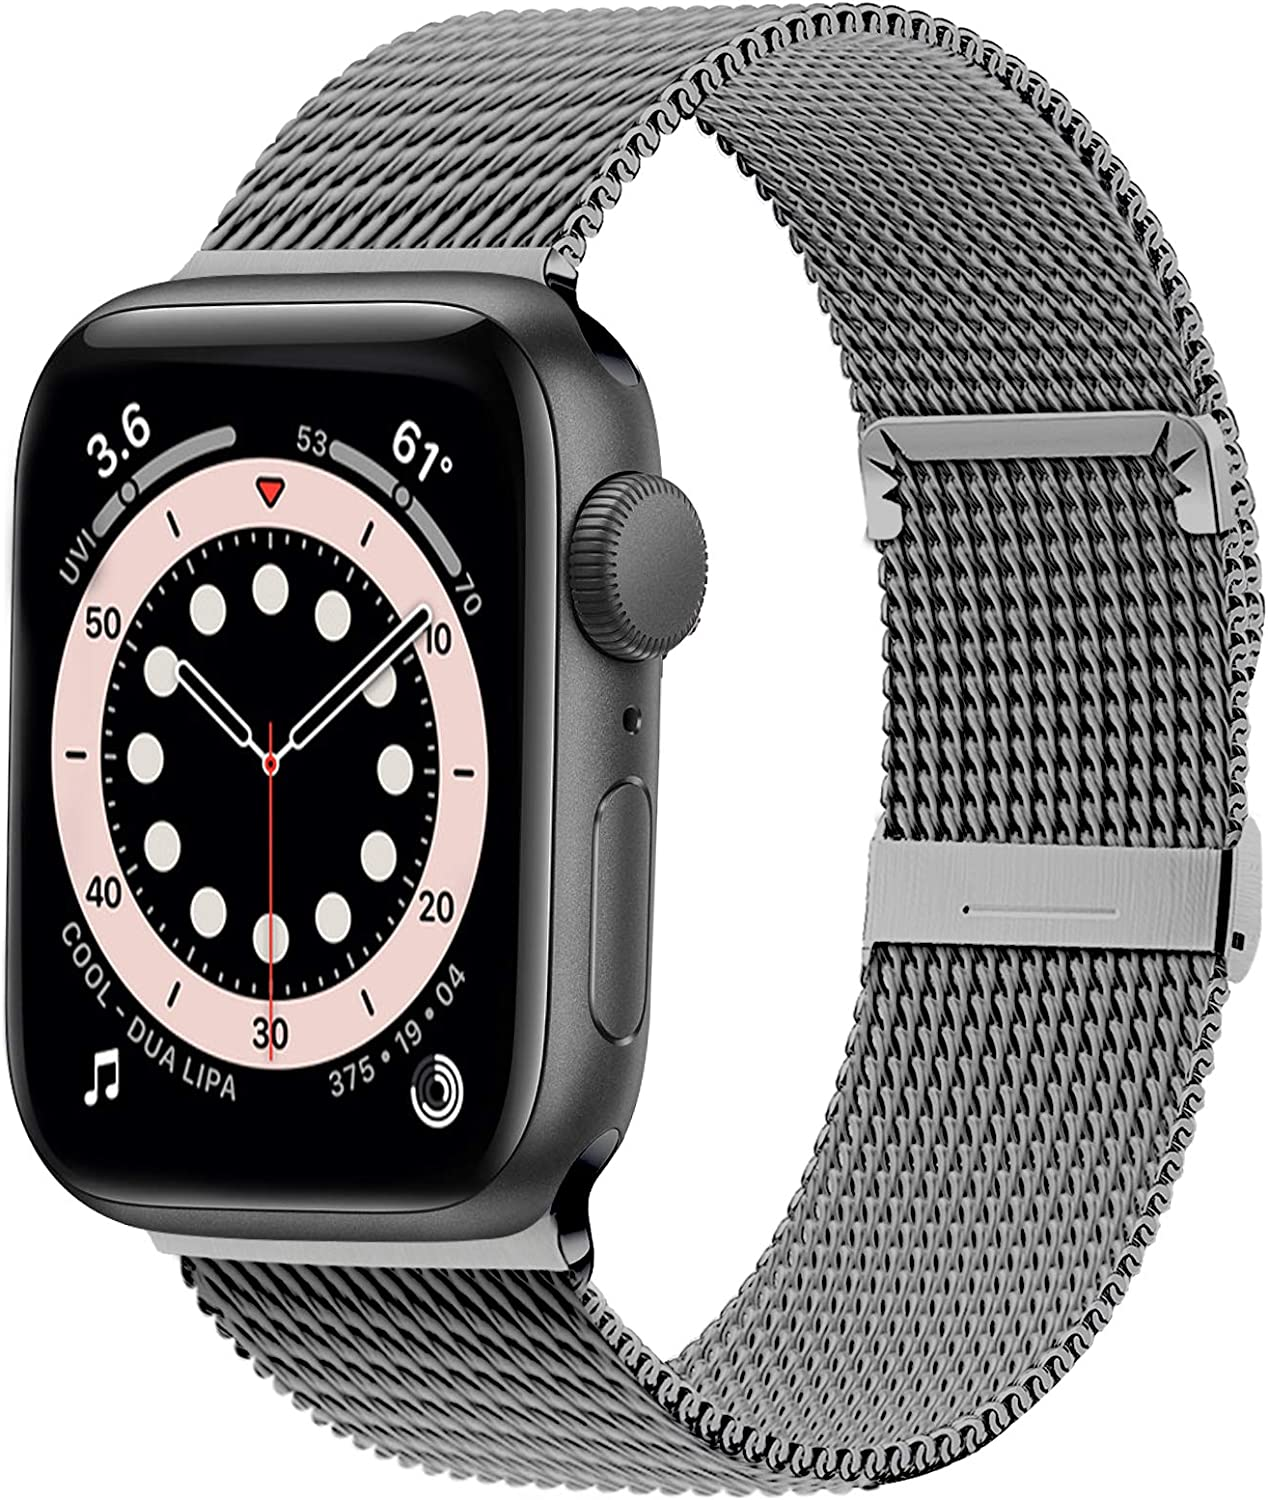 Ewsprou Magnetic Band Compatible with Apple Watch 38mm 40mm 42mm 44mm, Stainless Steel Mesh Strap Replacement for iWatch SE iWatch Series 6/5/4/3/2/1 Women Men (Spacy, 42mm 44mm)